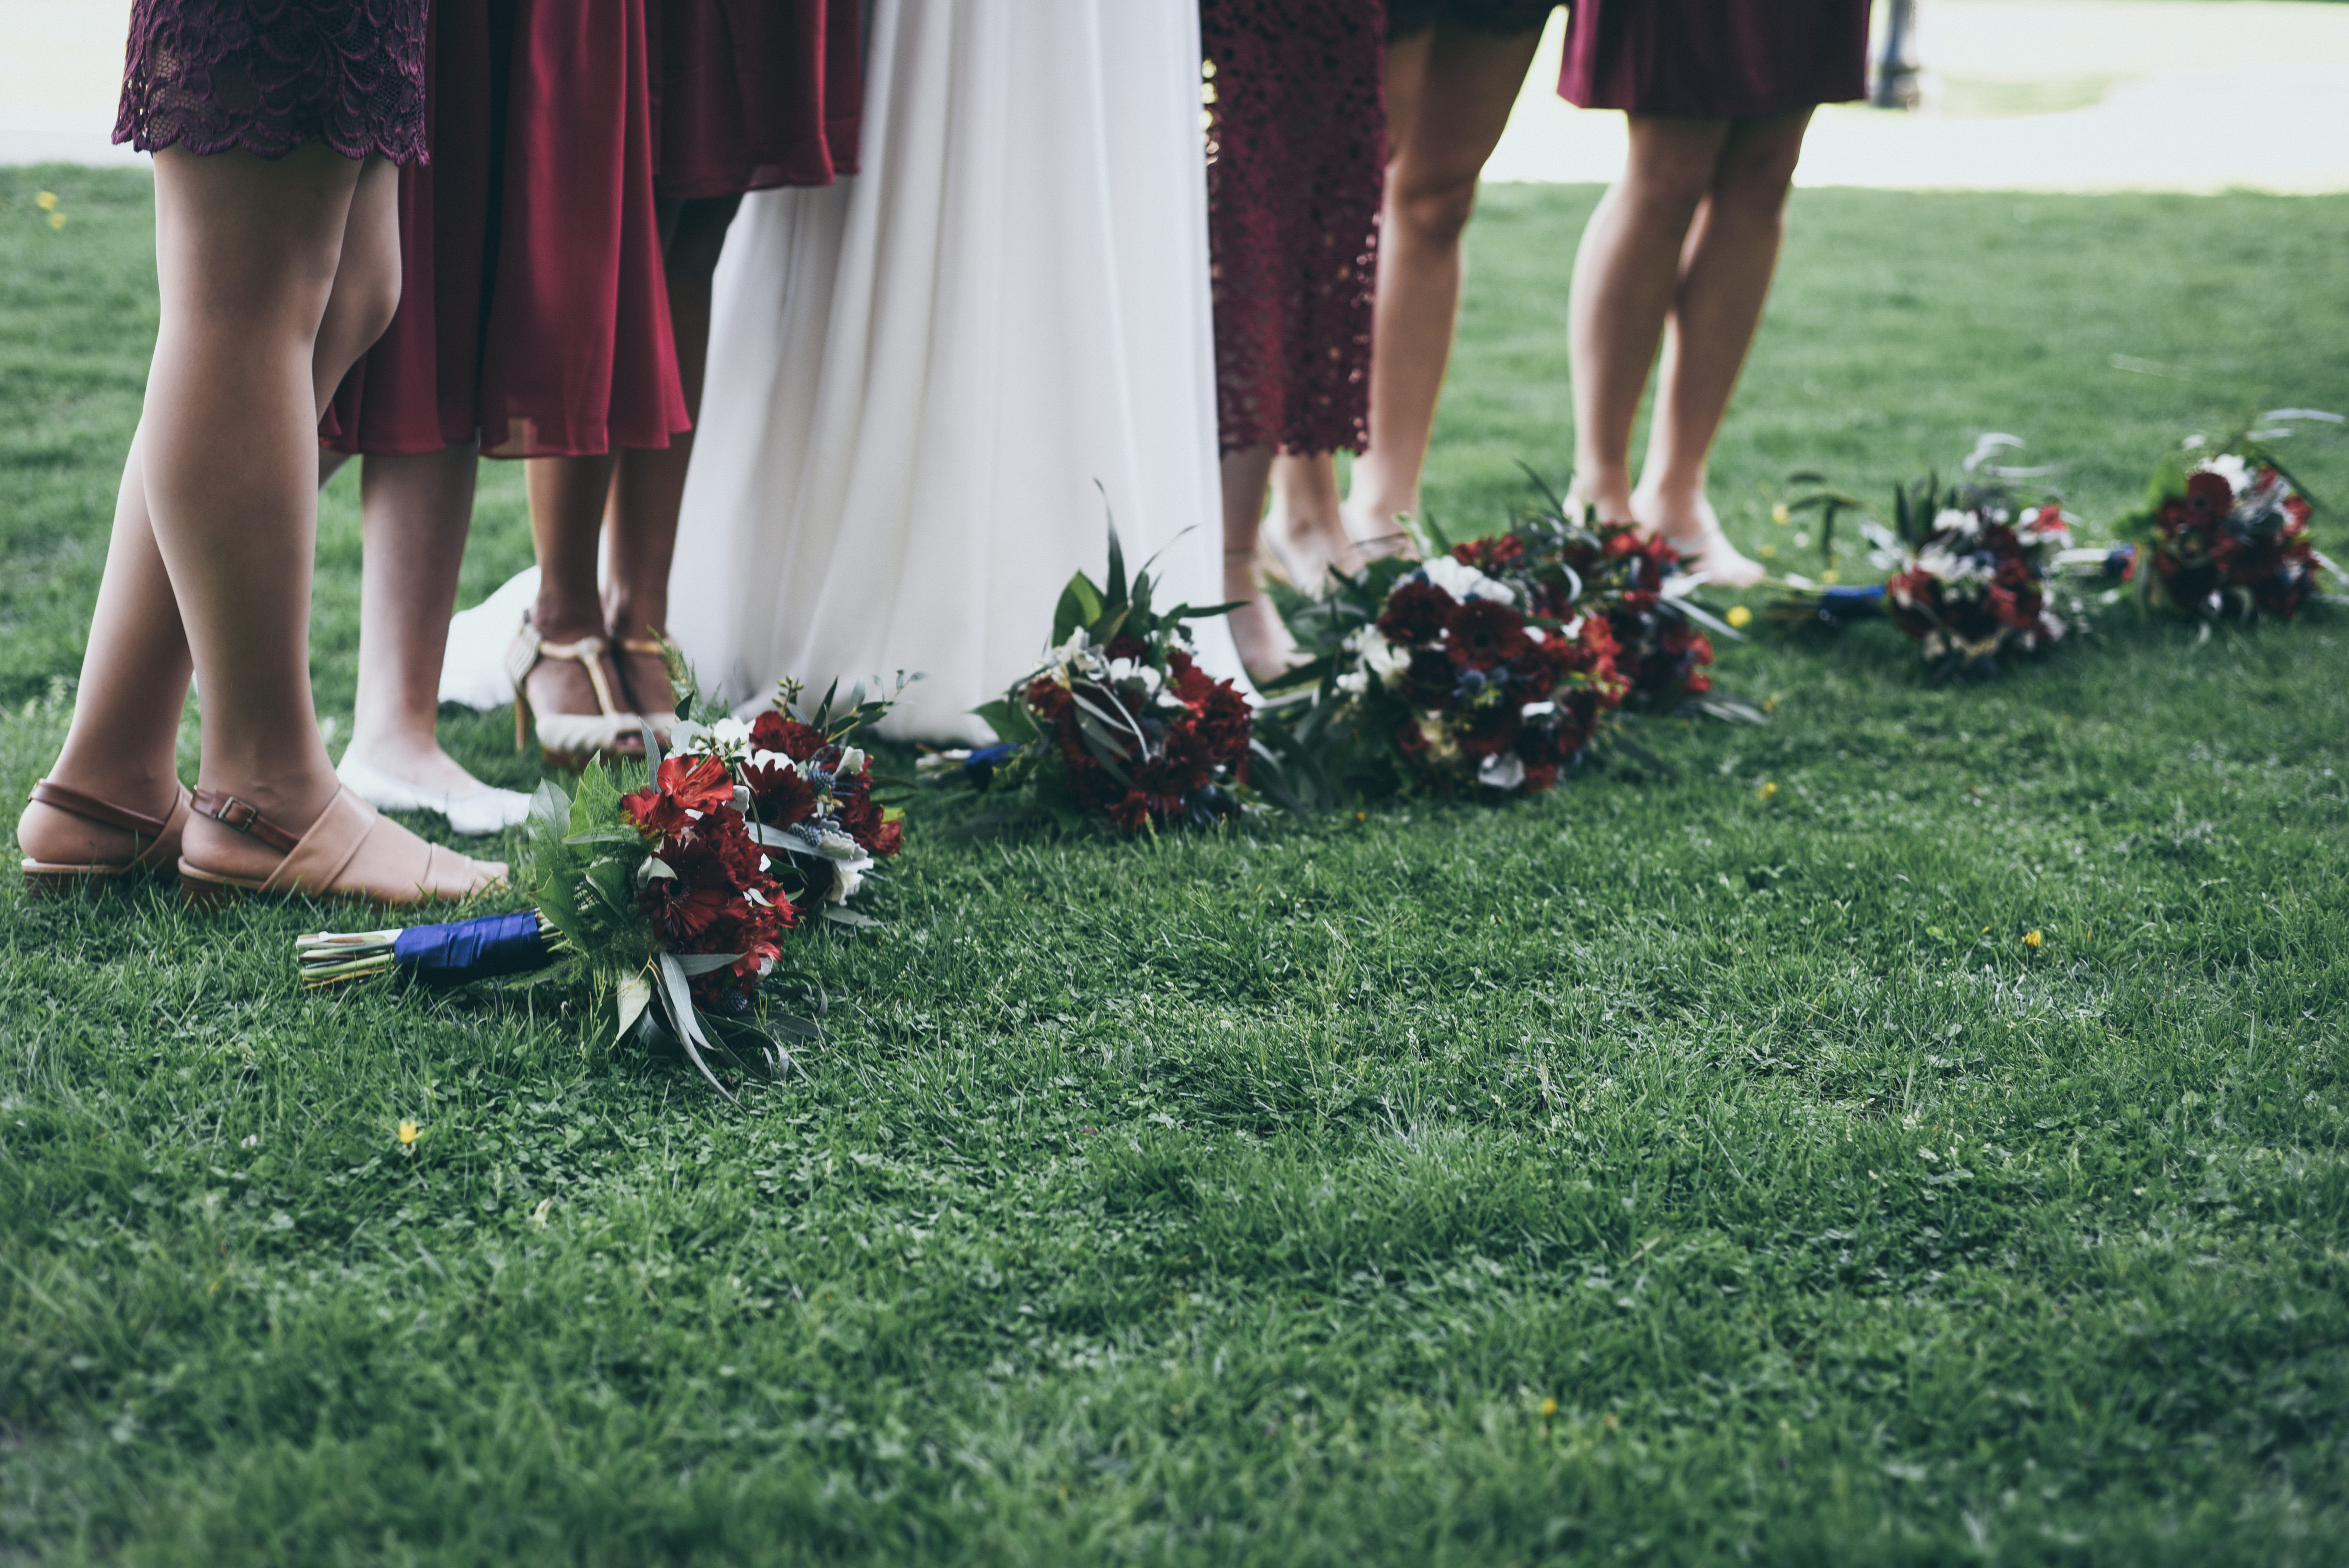 bridesmaids with bouquets at their feet